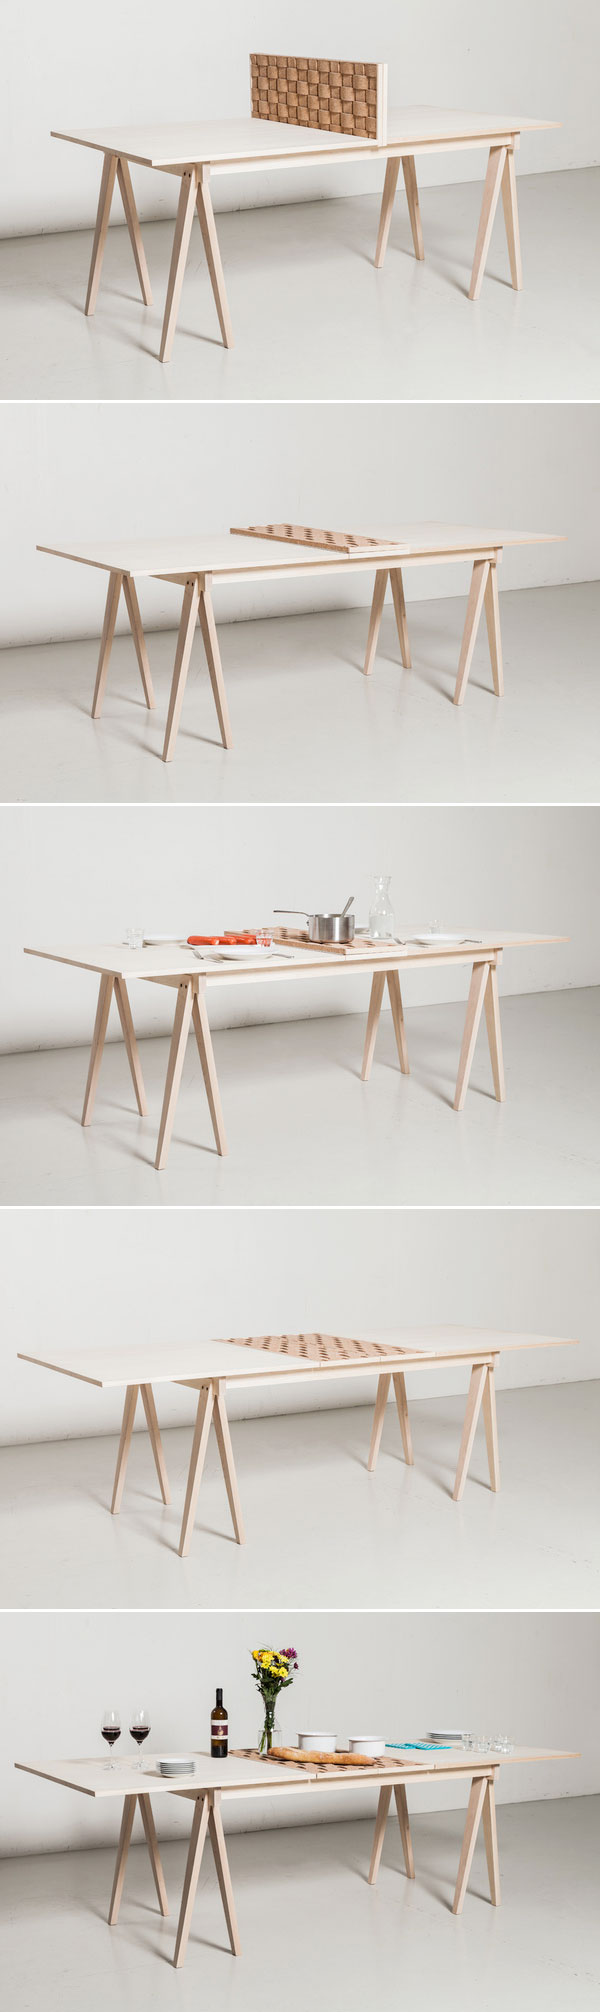 30 Extendable Dining Tables Architecture Design